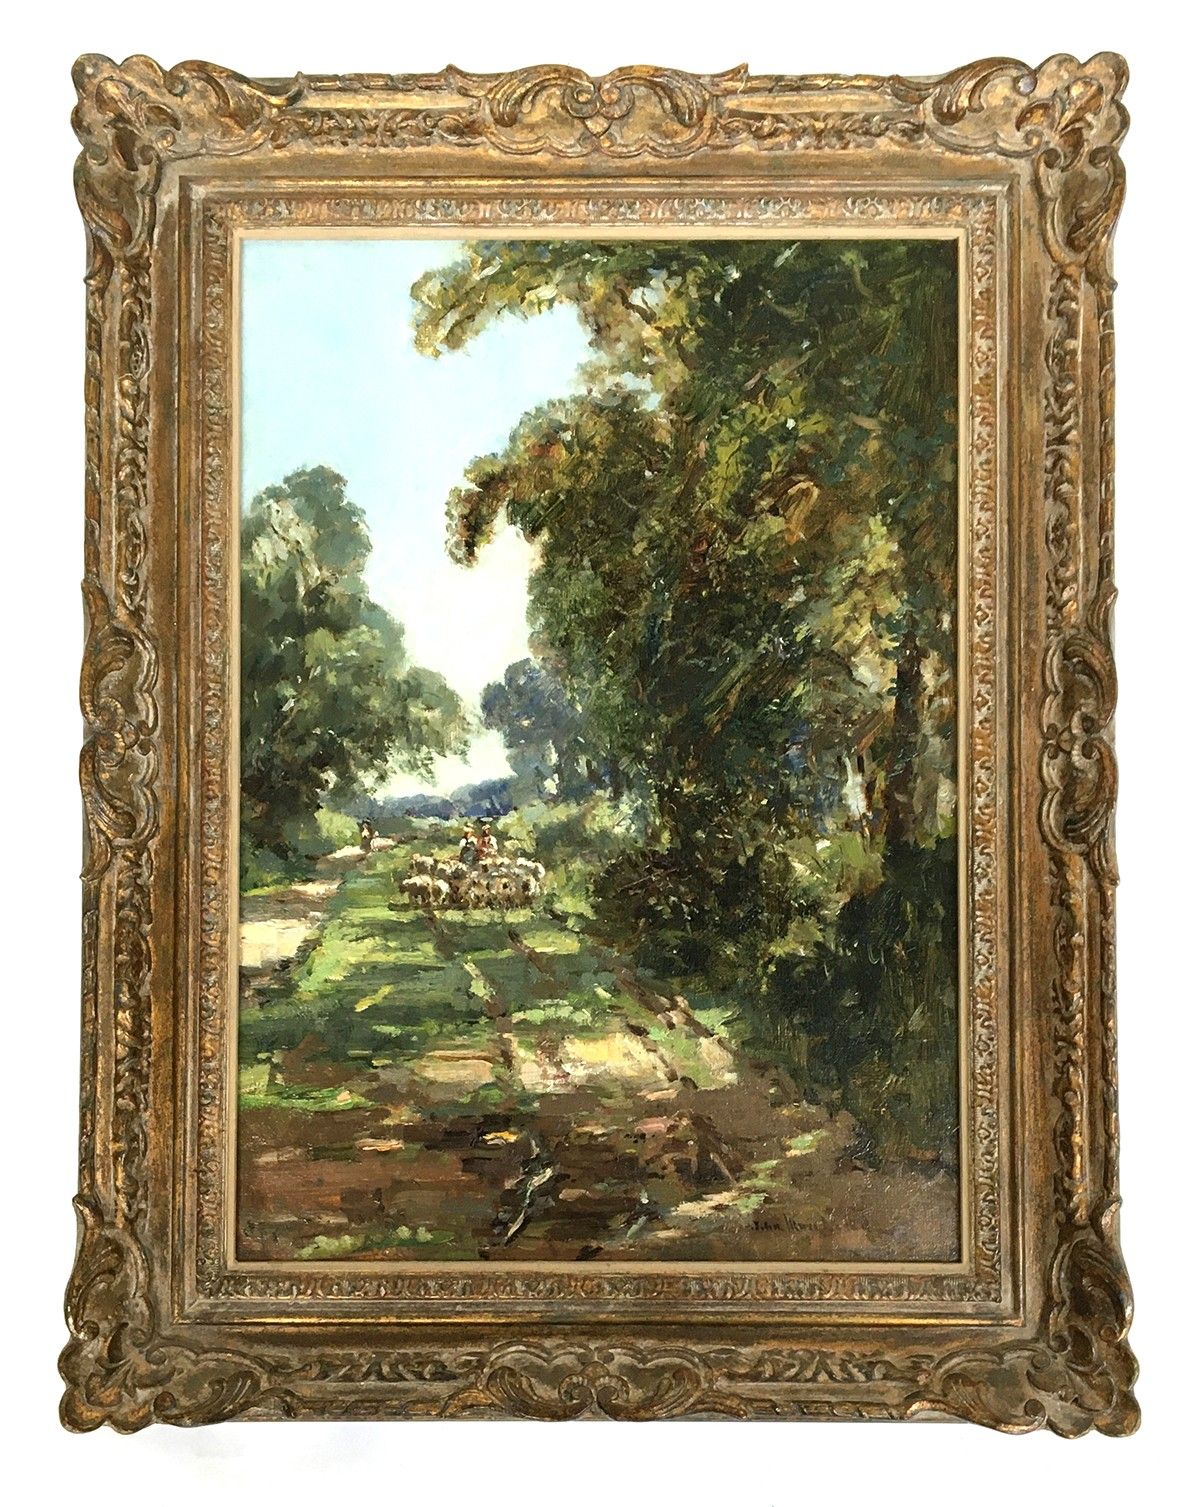 Early 20th century British, oil on board, sheep drove, signed indistinctly lower right 'John...', - Image 2 of 2